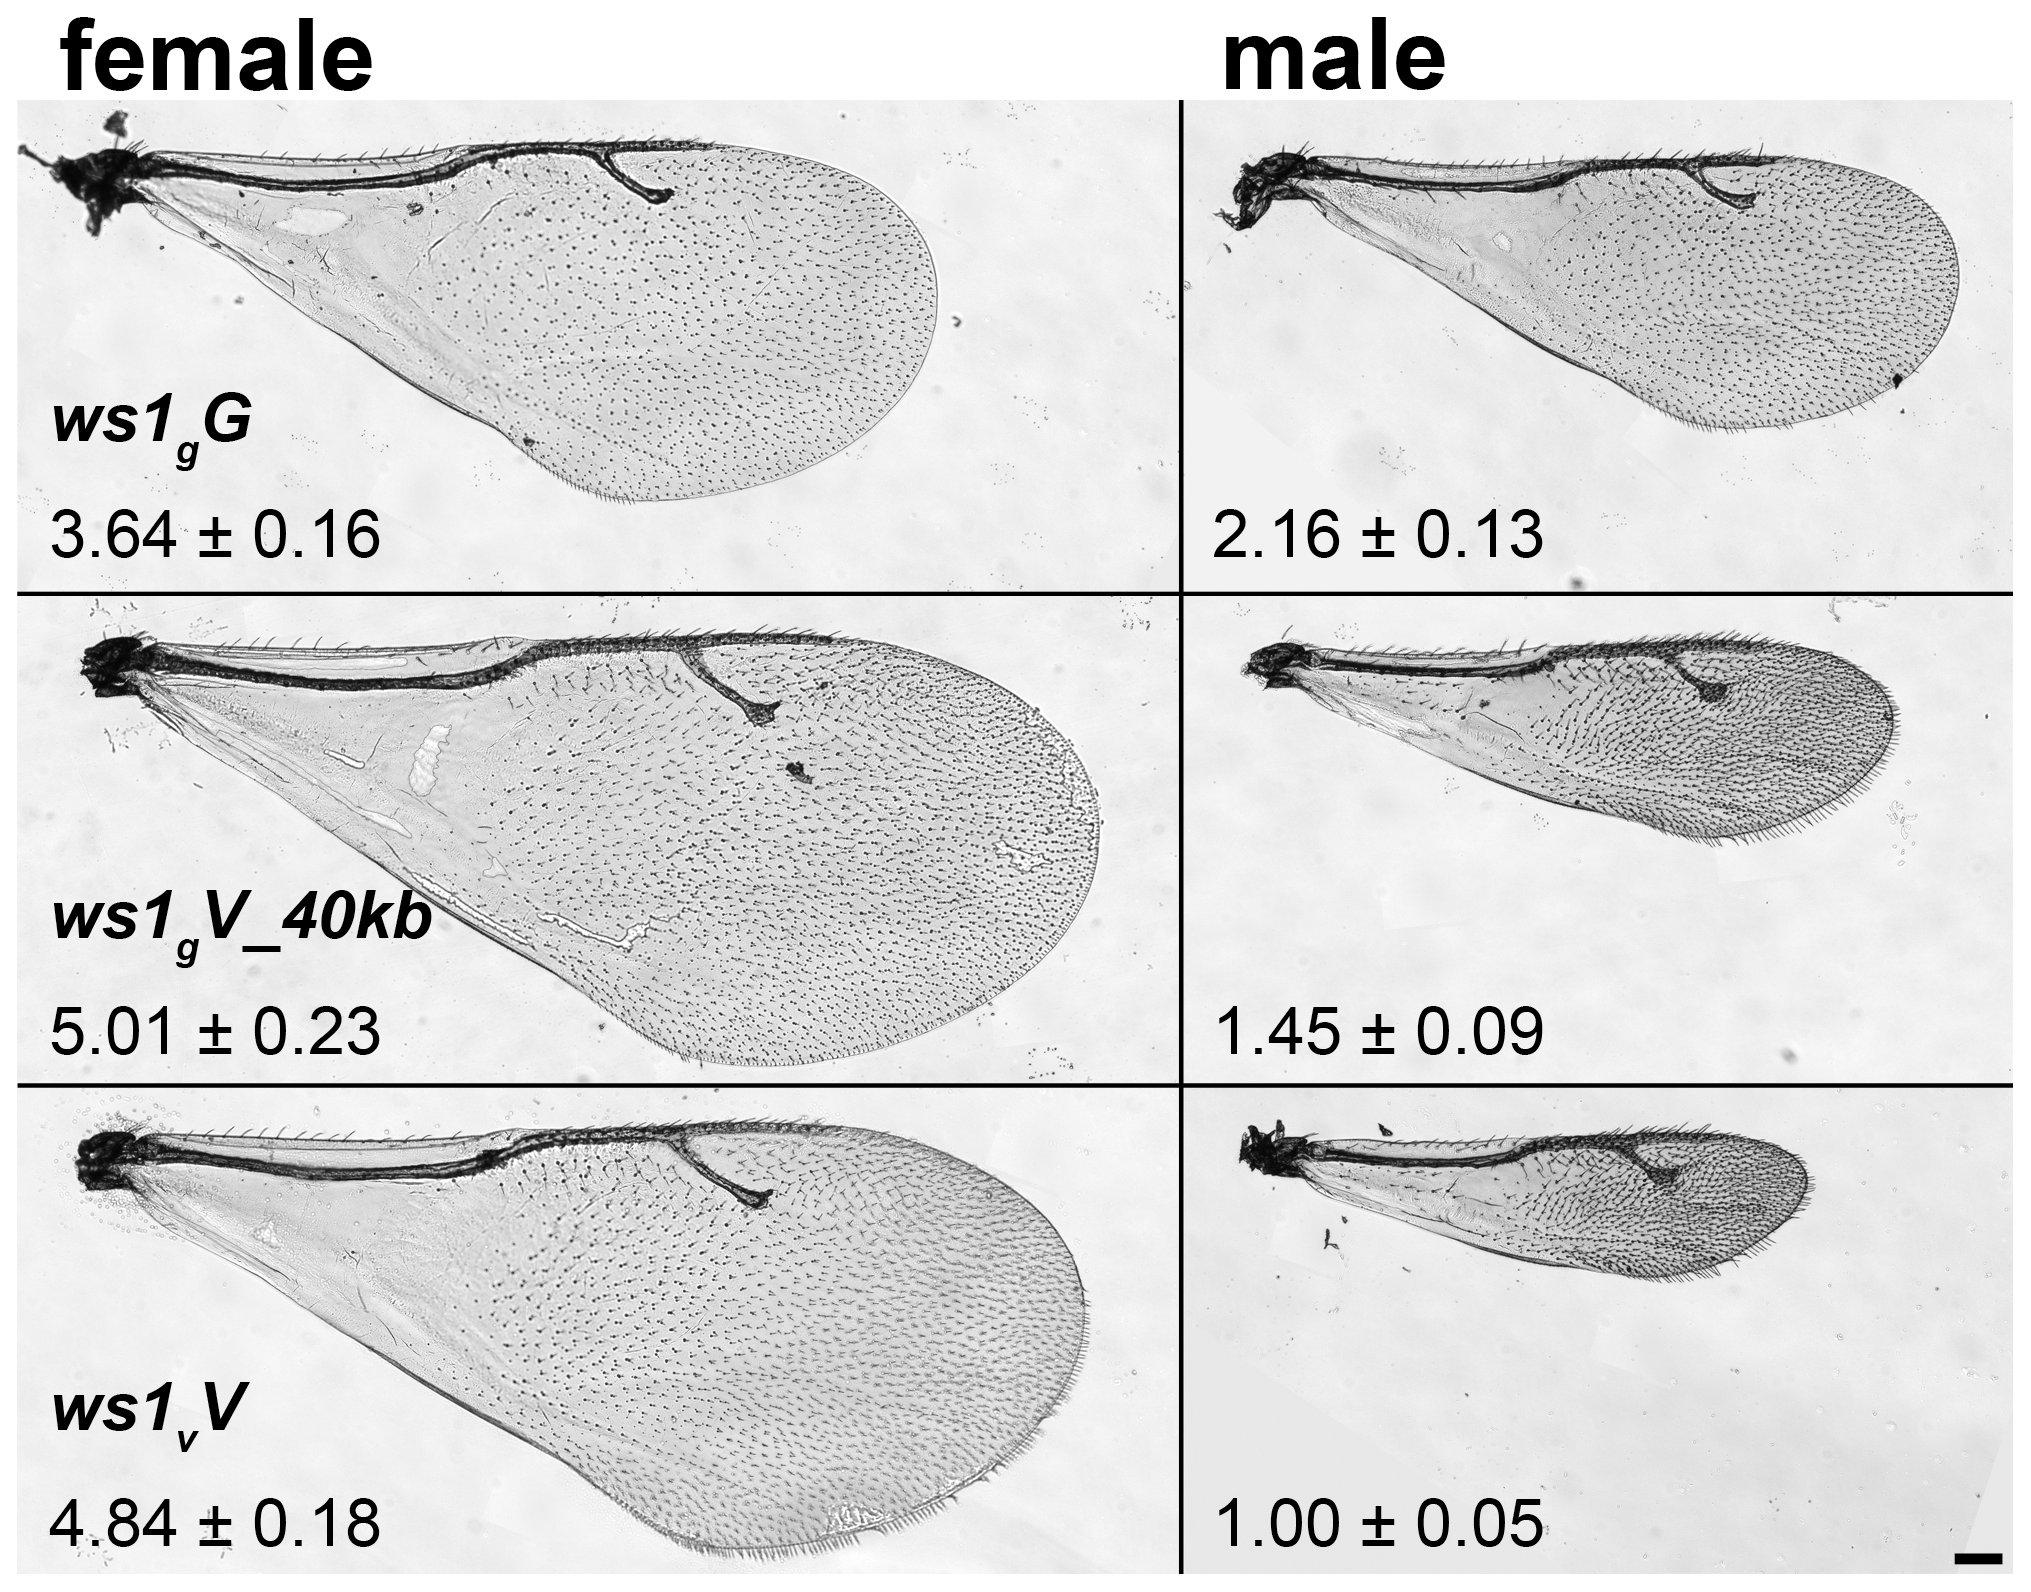 Wing size differences due to <i>ws1.</i>